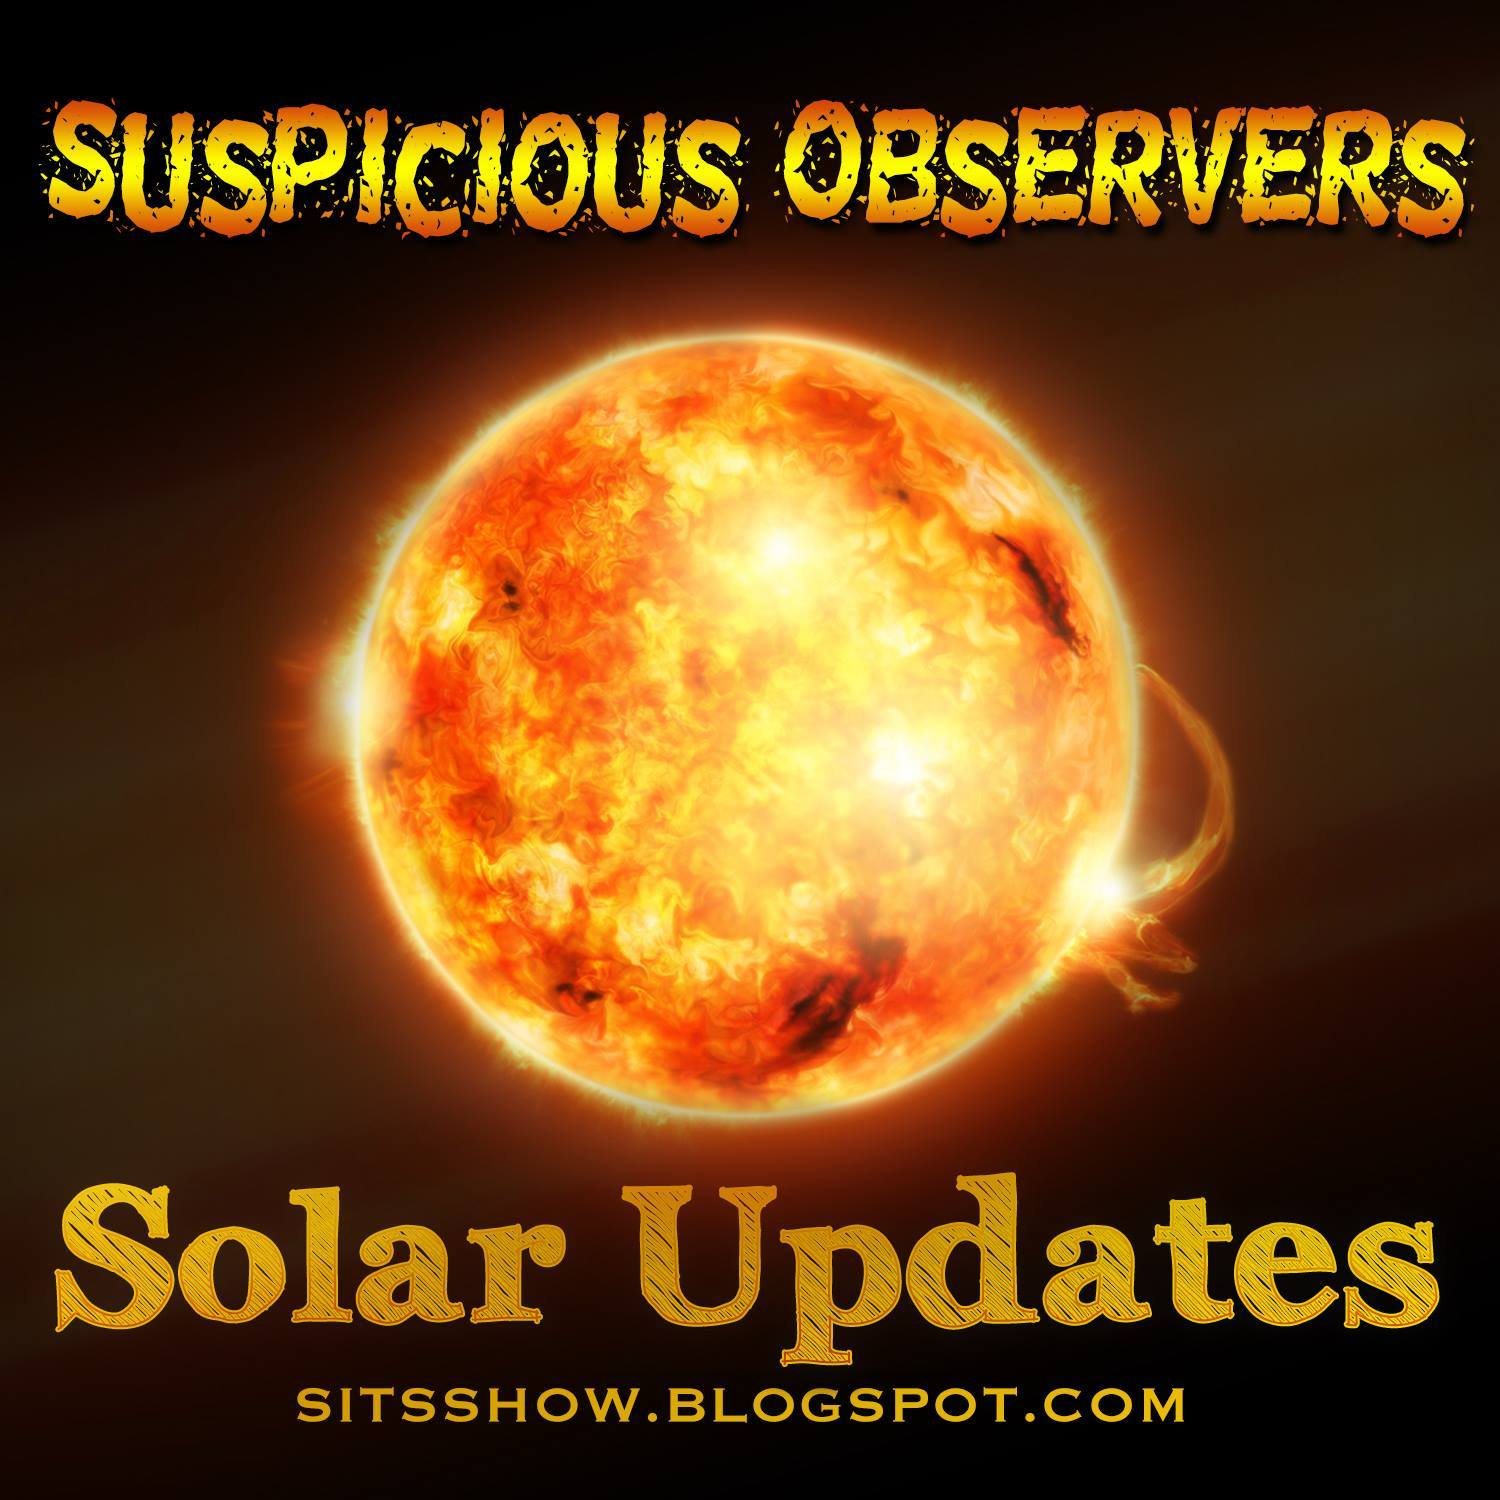 Earth Changes from September 2017 - to present / Biblical Hurricanes, Earthquakes, Floods, Volcanic Activity, Fires, Snow Ice Storms - Page 4 Solar%2Bupdates%2Bsuspicious0bervers